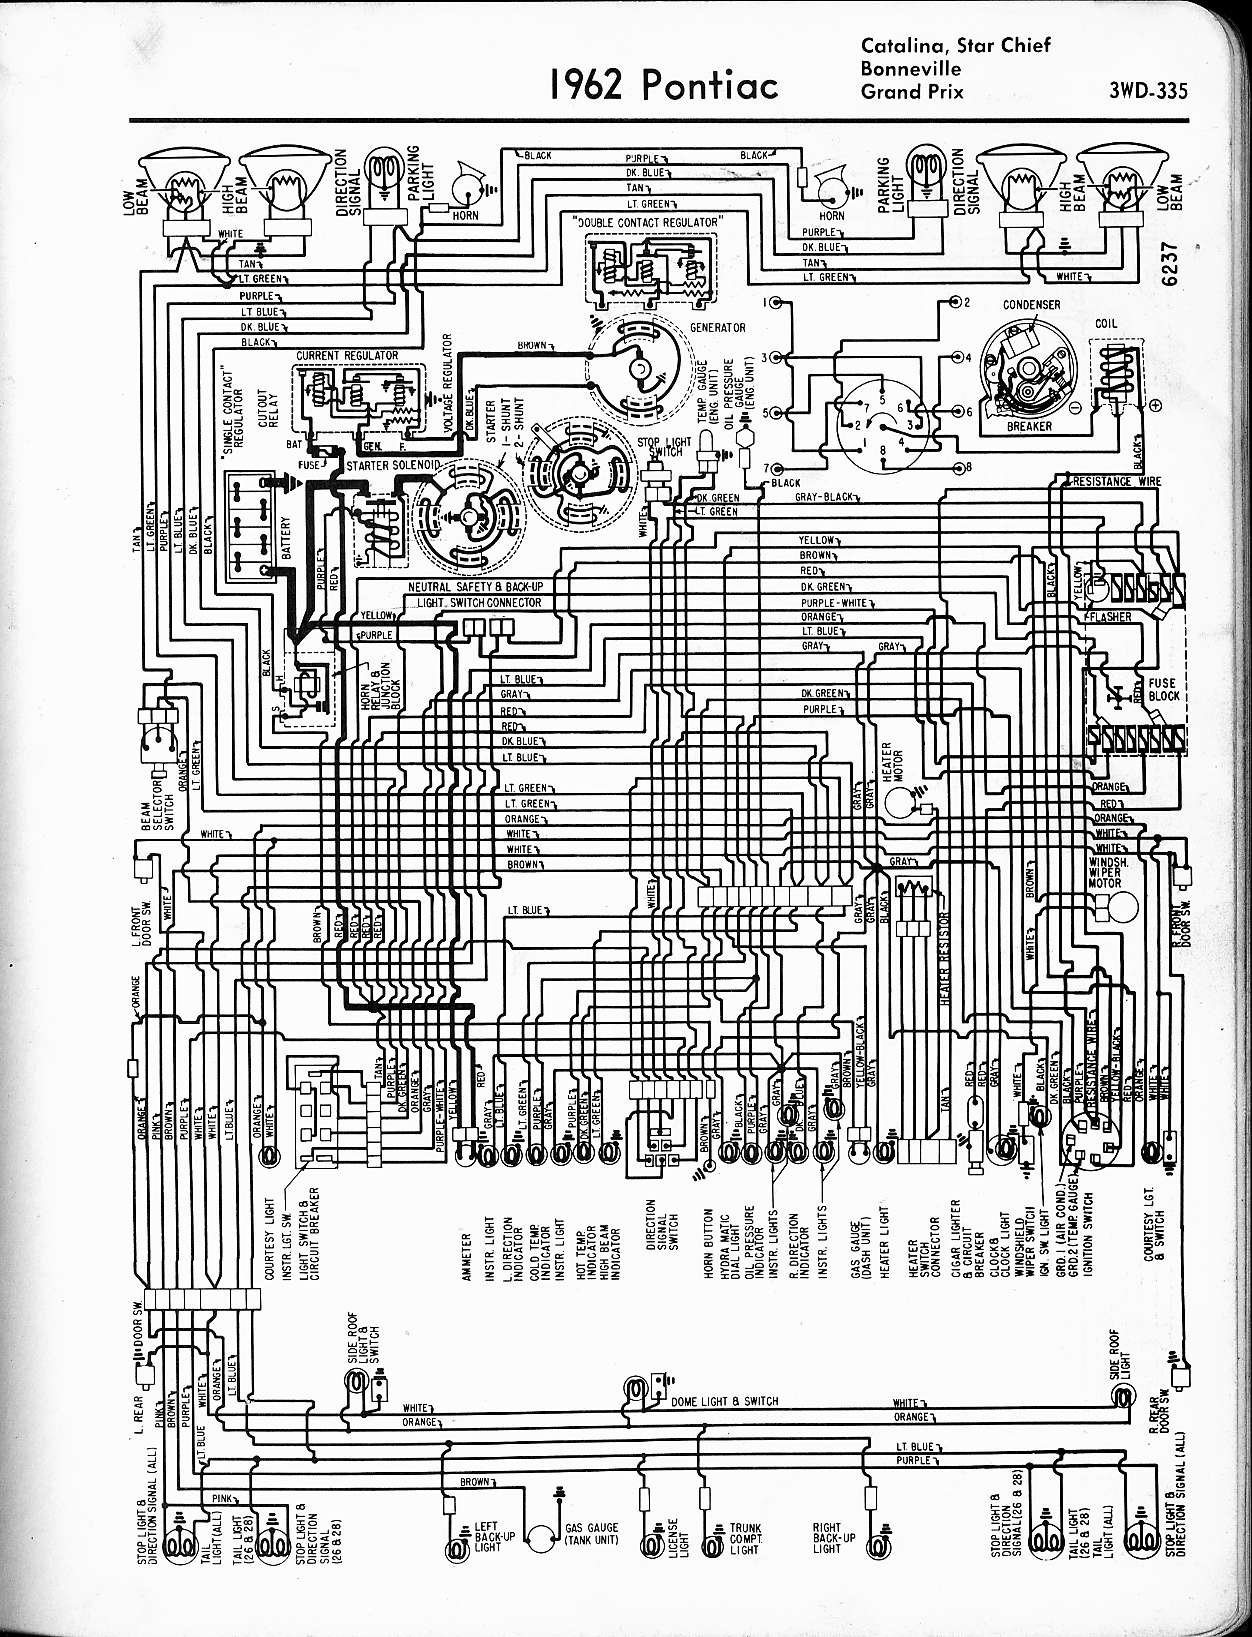 radio wiring diagram for 1995 pontiac bonneville blog wiring diagram 3800 V6 Engine Whole Diagram 95 bonneville wiring diagrams best wiring library 1968 pontiac bonneville wiring diagram 1995 pontiac grand